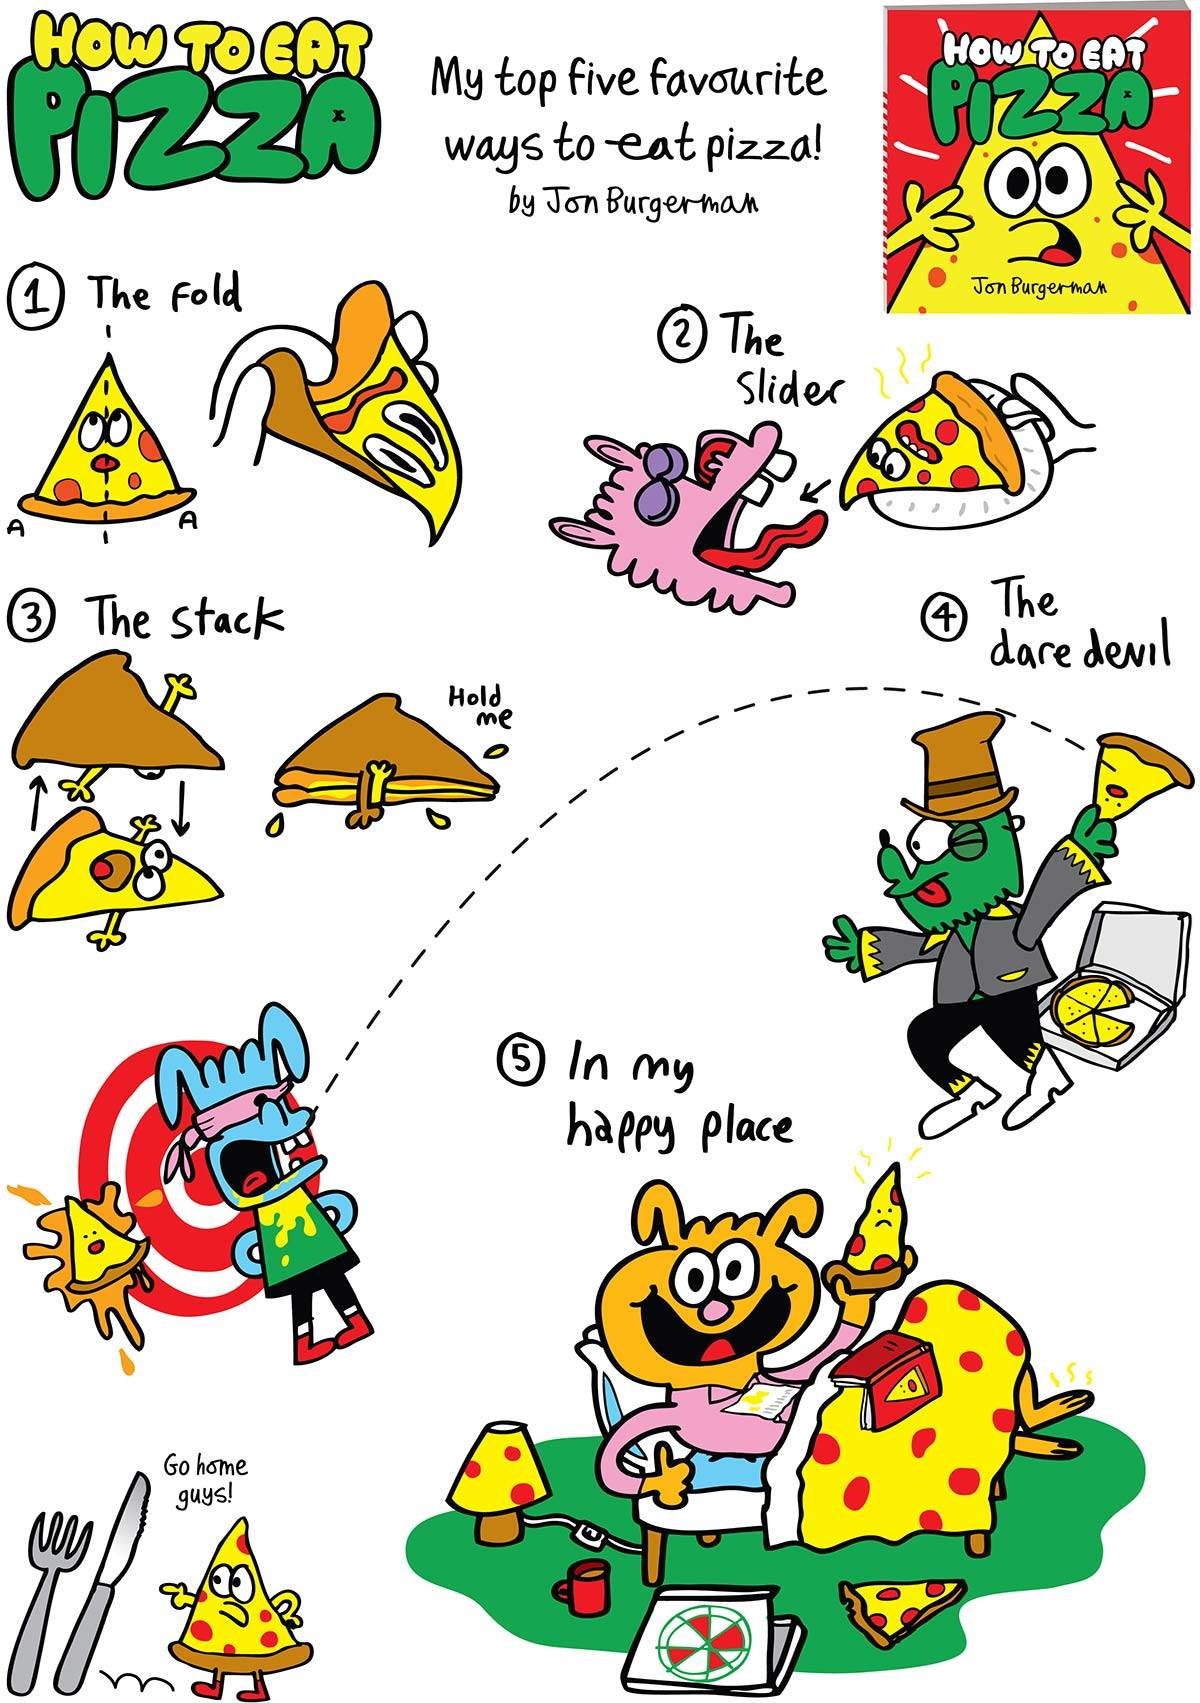 5 ways to eat pizza